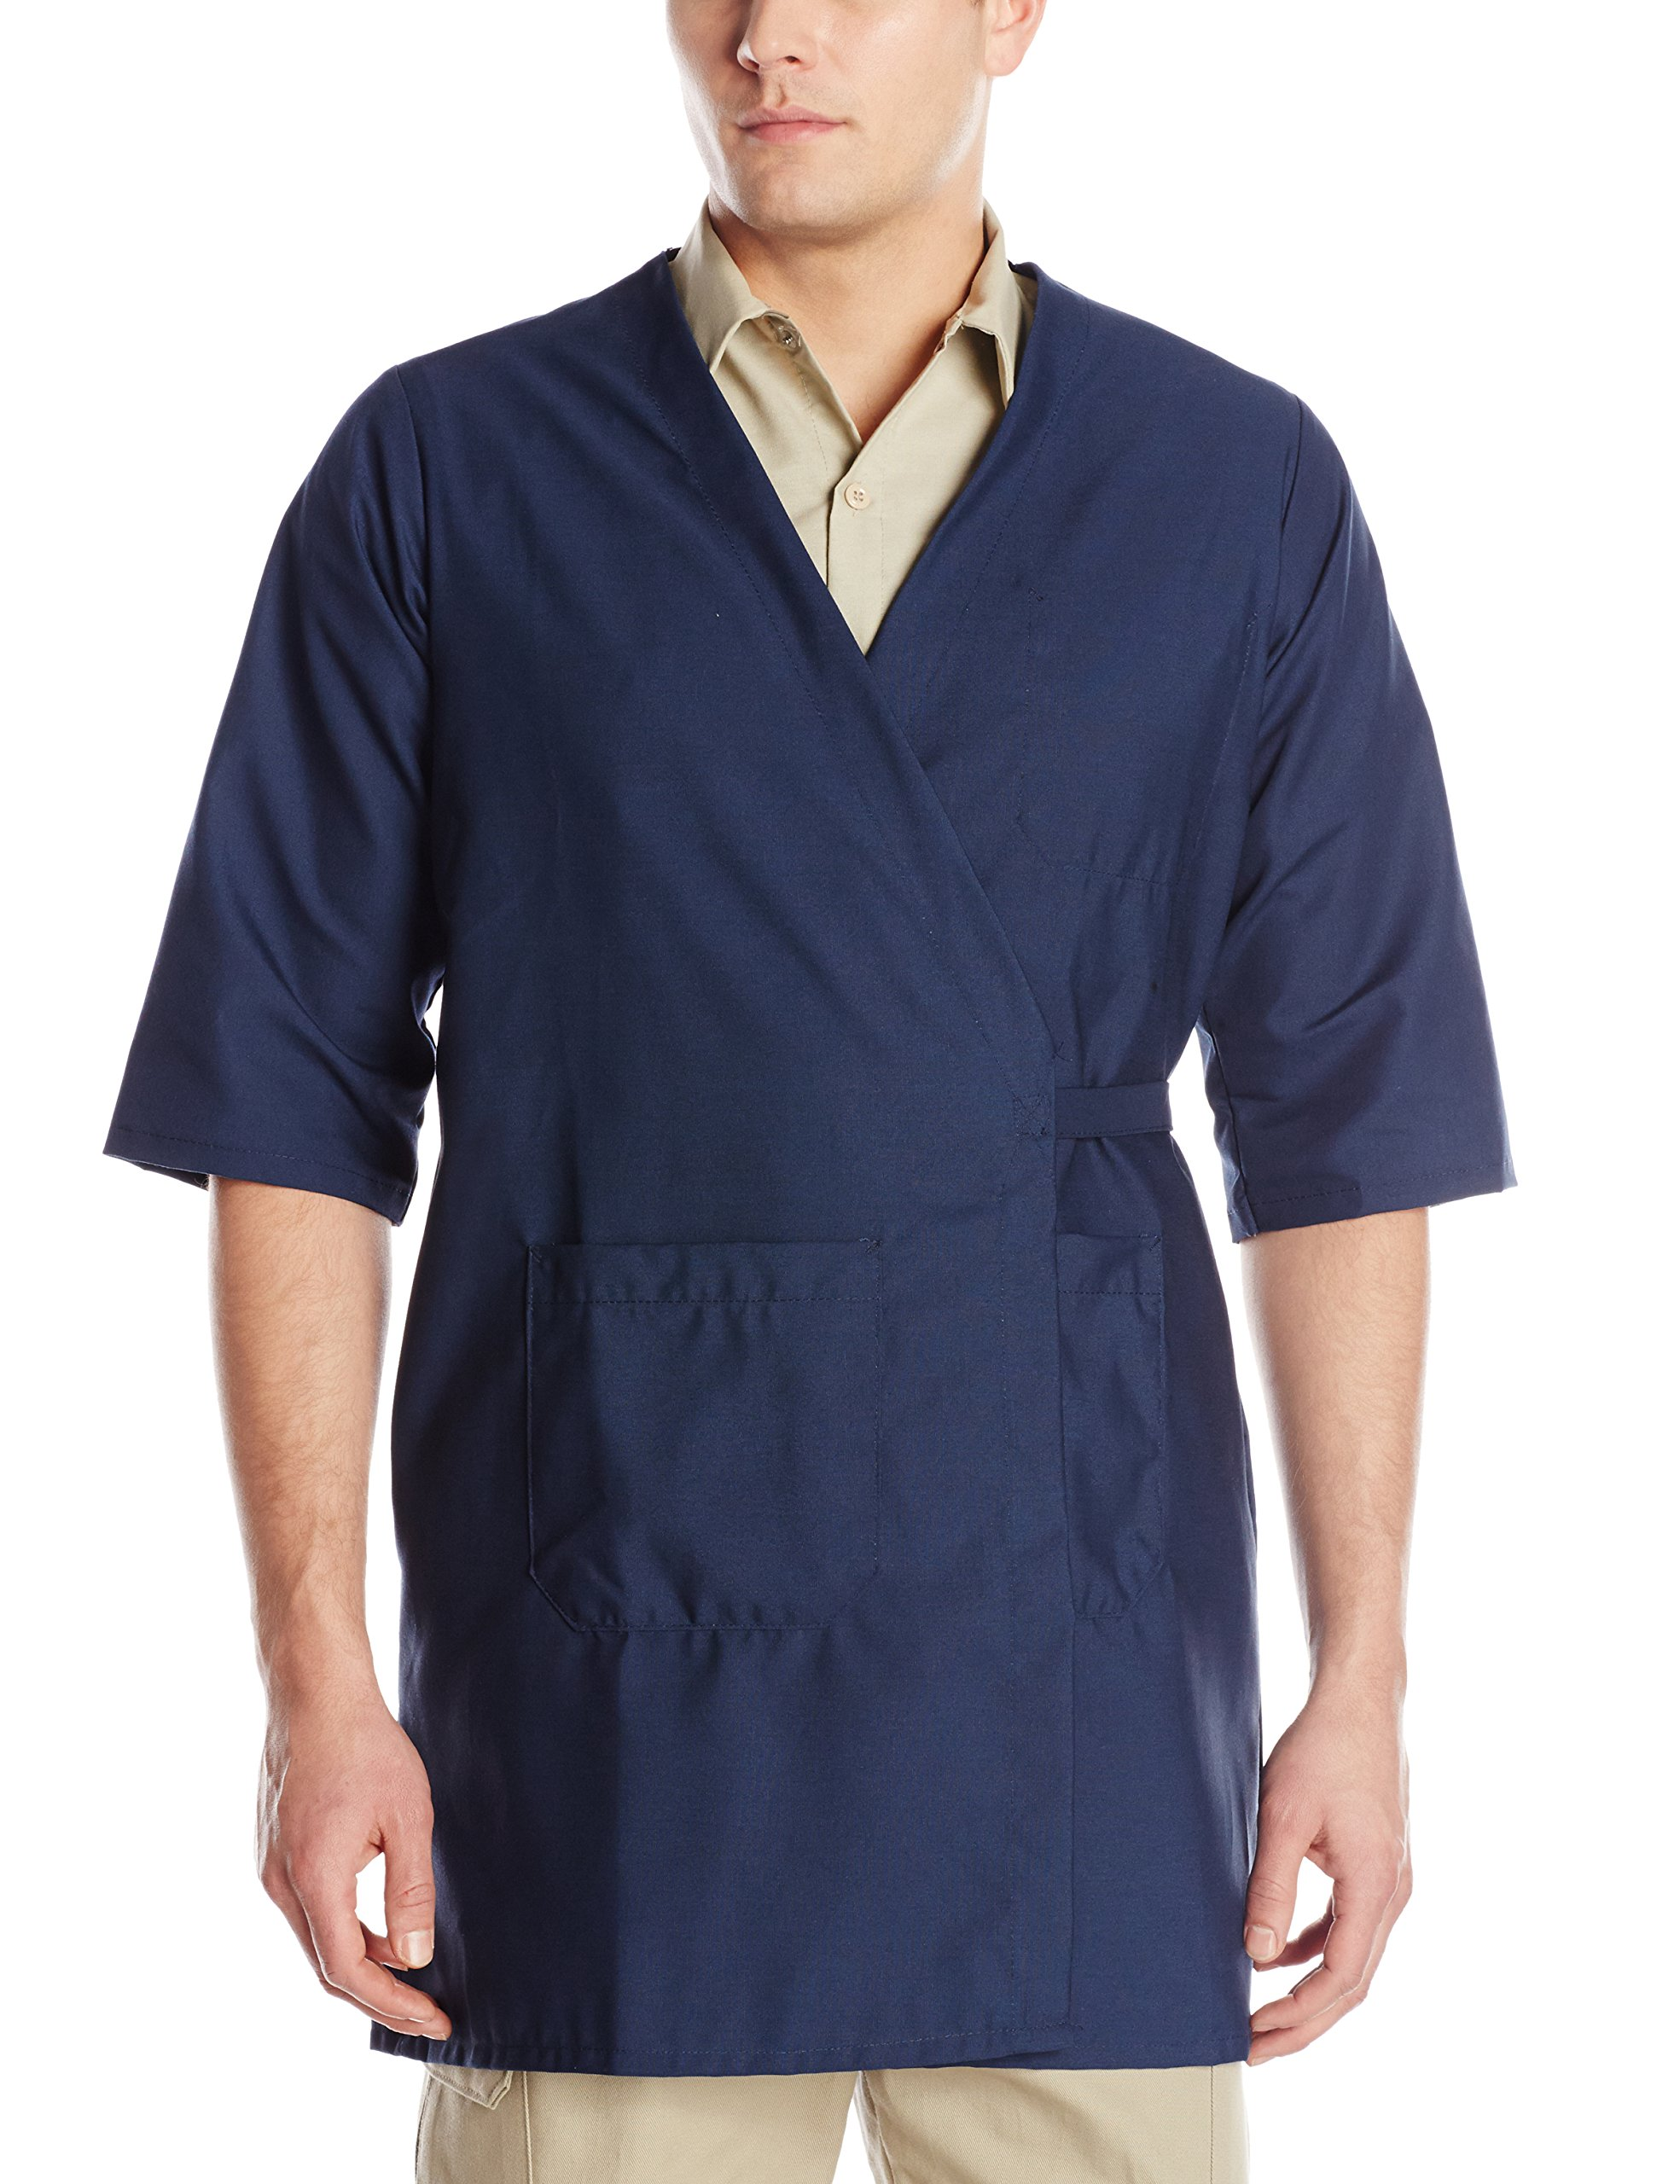 Red Kap Men's CollarleShort Sleeve Butcher Wrap, Navy, Medium by Red Kap